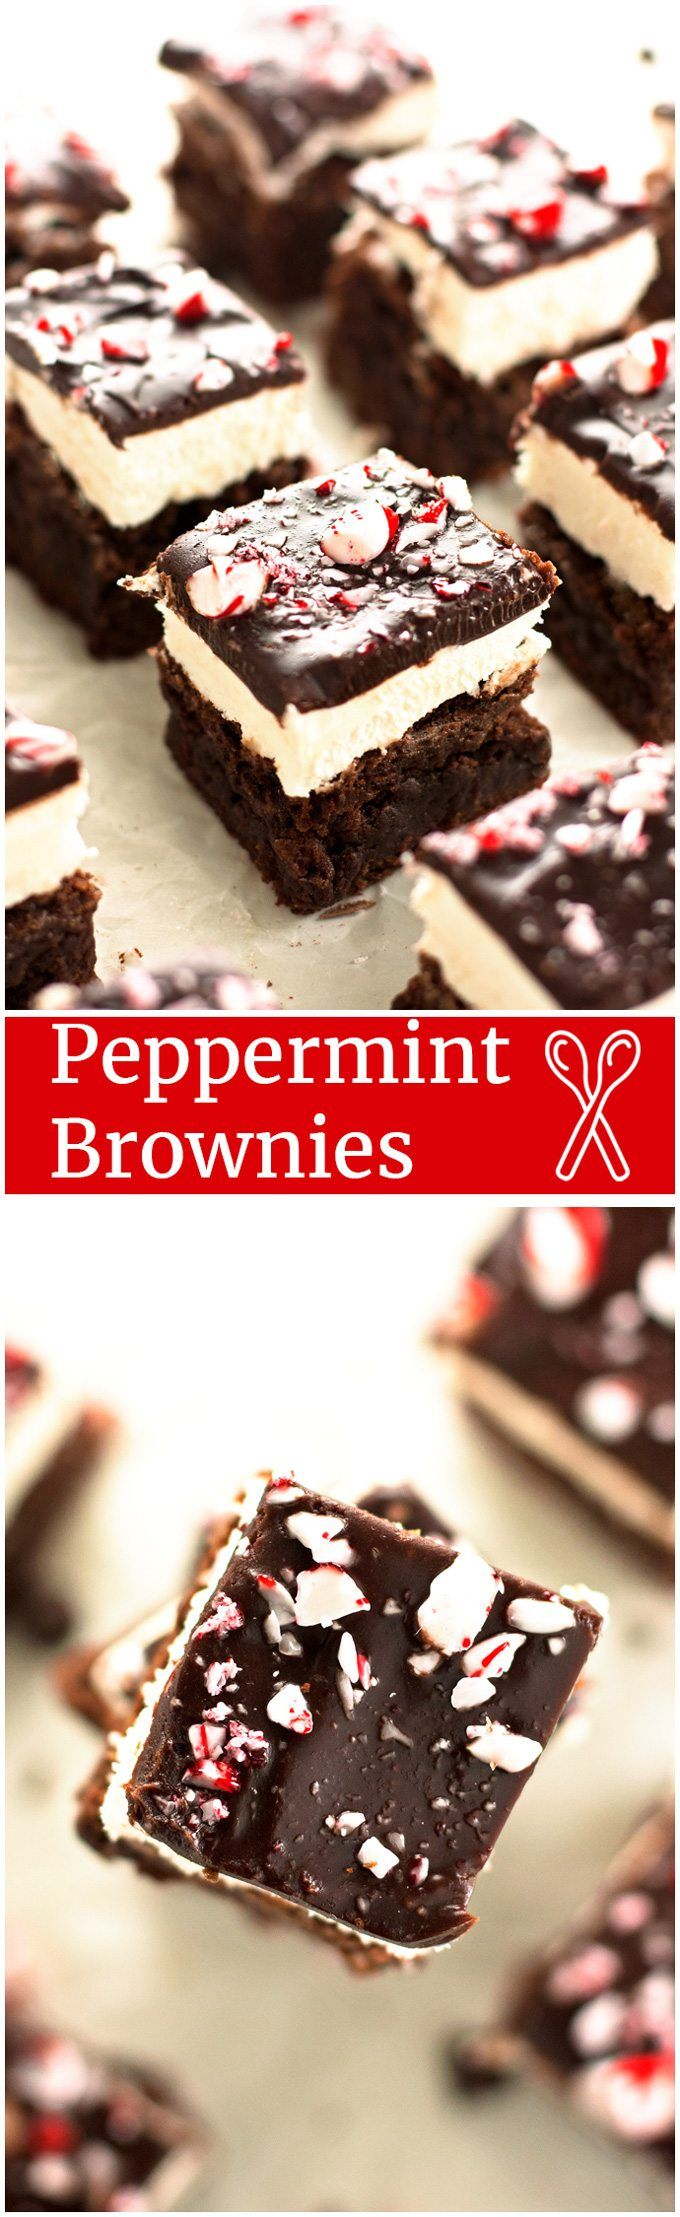 Peppermint Brownies - Fudgy peppermint brownies topped with creamy peppermint frosting, a rich layer of chocolate ganache, and crushed candy canes